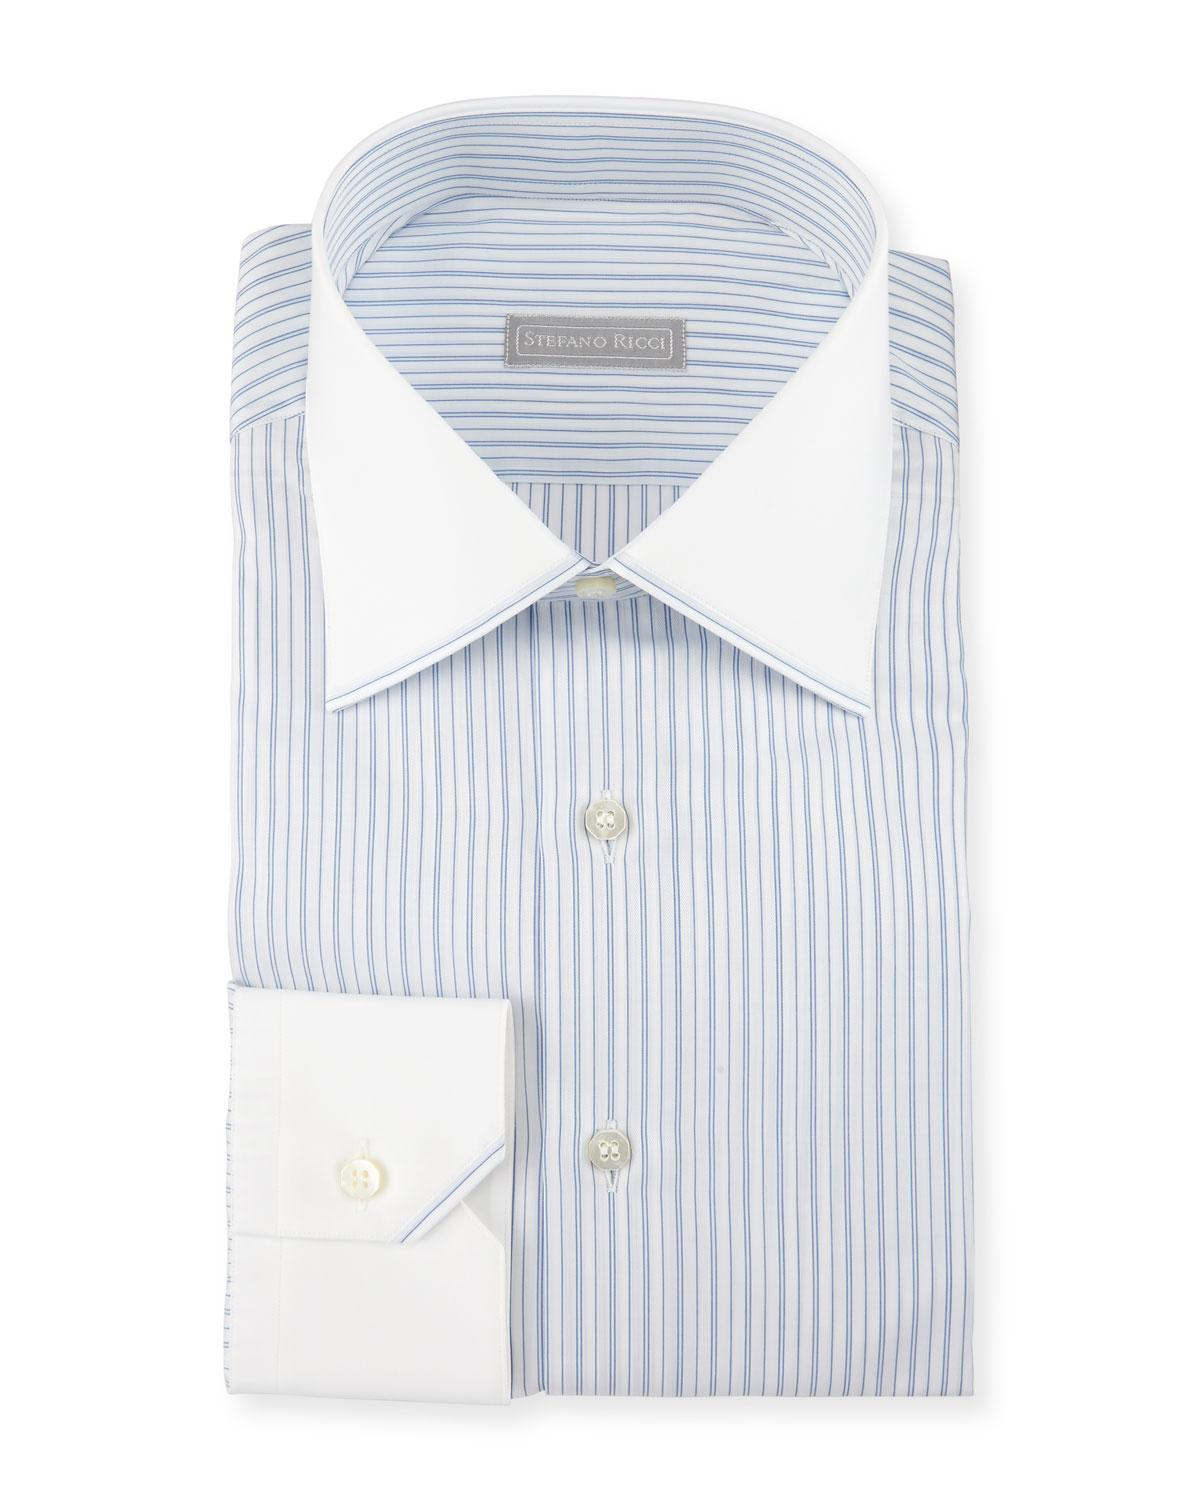 Stefano ricci contrast collar cuff striped dress shirt in for Mens dress shirts with contrasting collars and cuffs